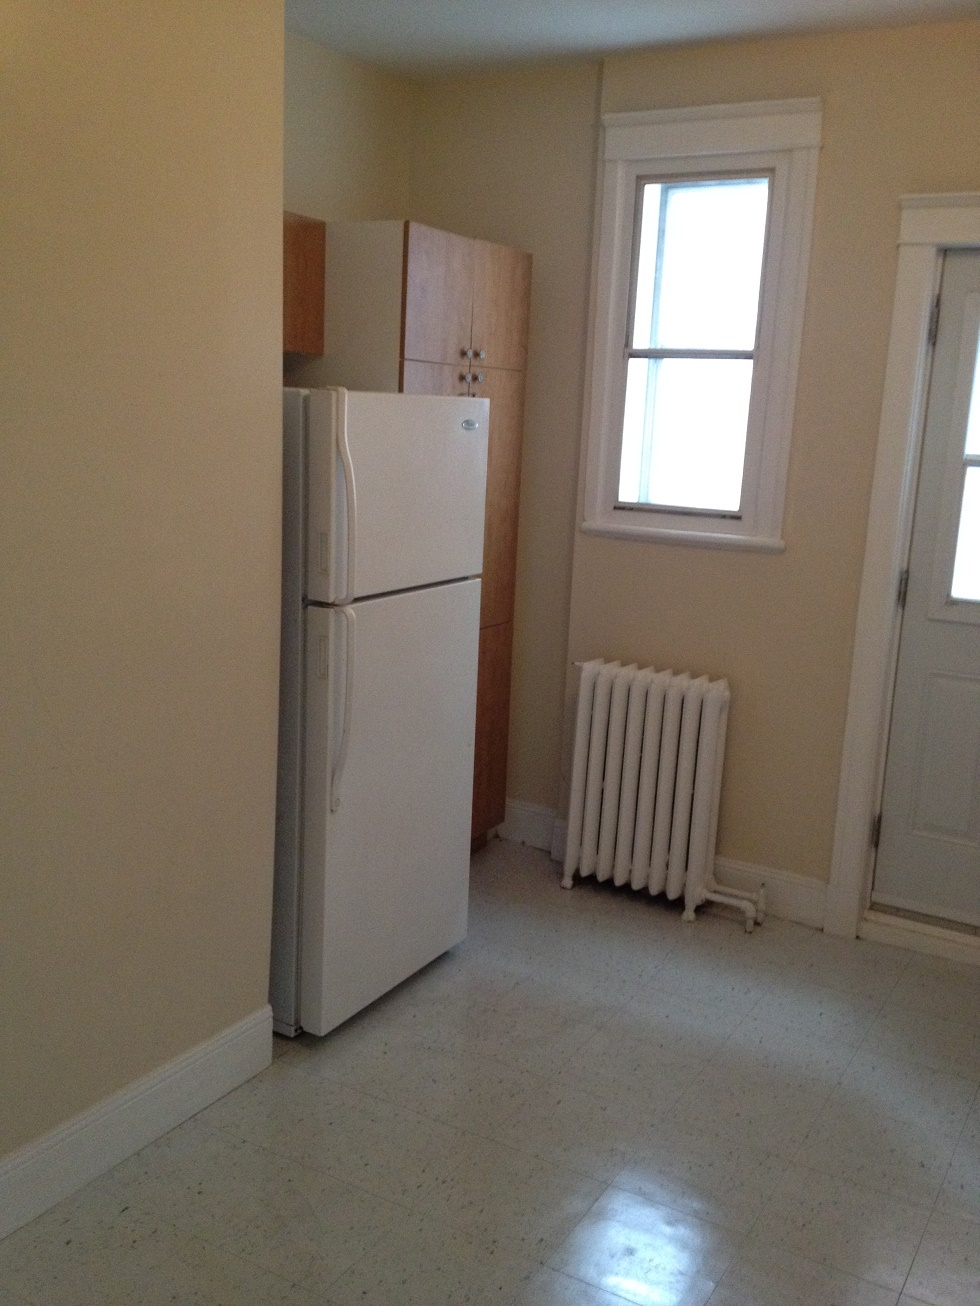 2 bedroom Apartments for rent in Cote-St-Luc at 5430 Cote Saint Luc - Photo 05 - RentersPages – L112094